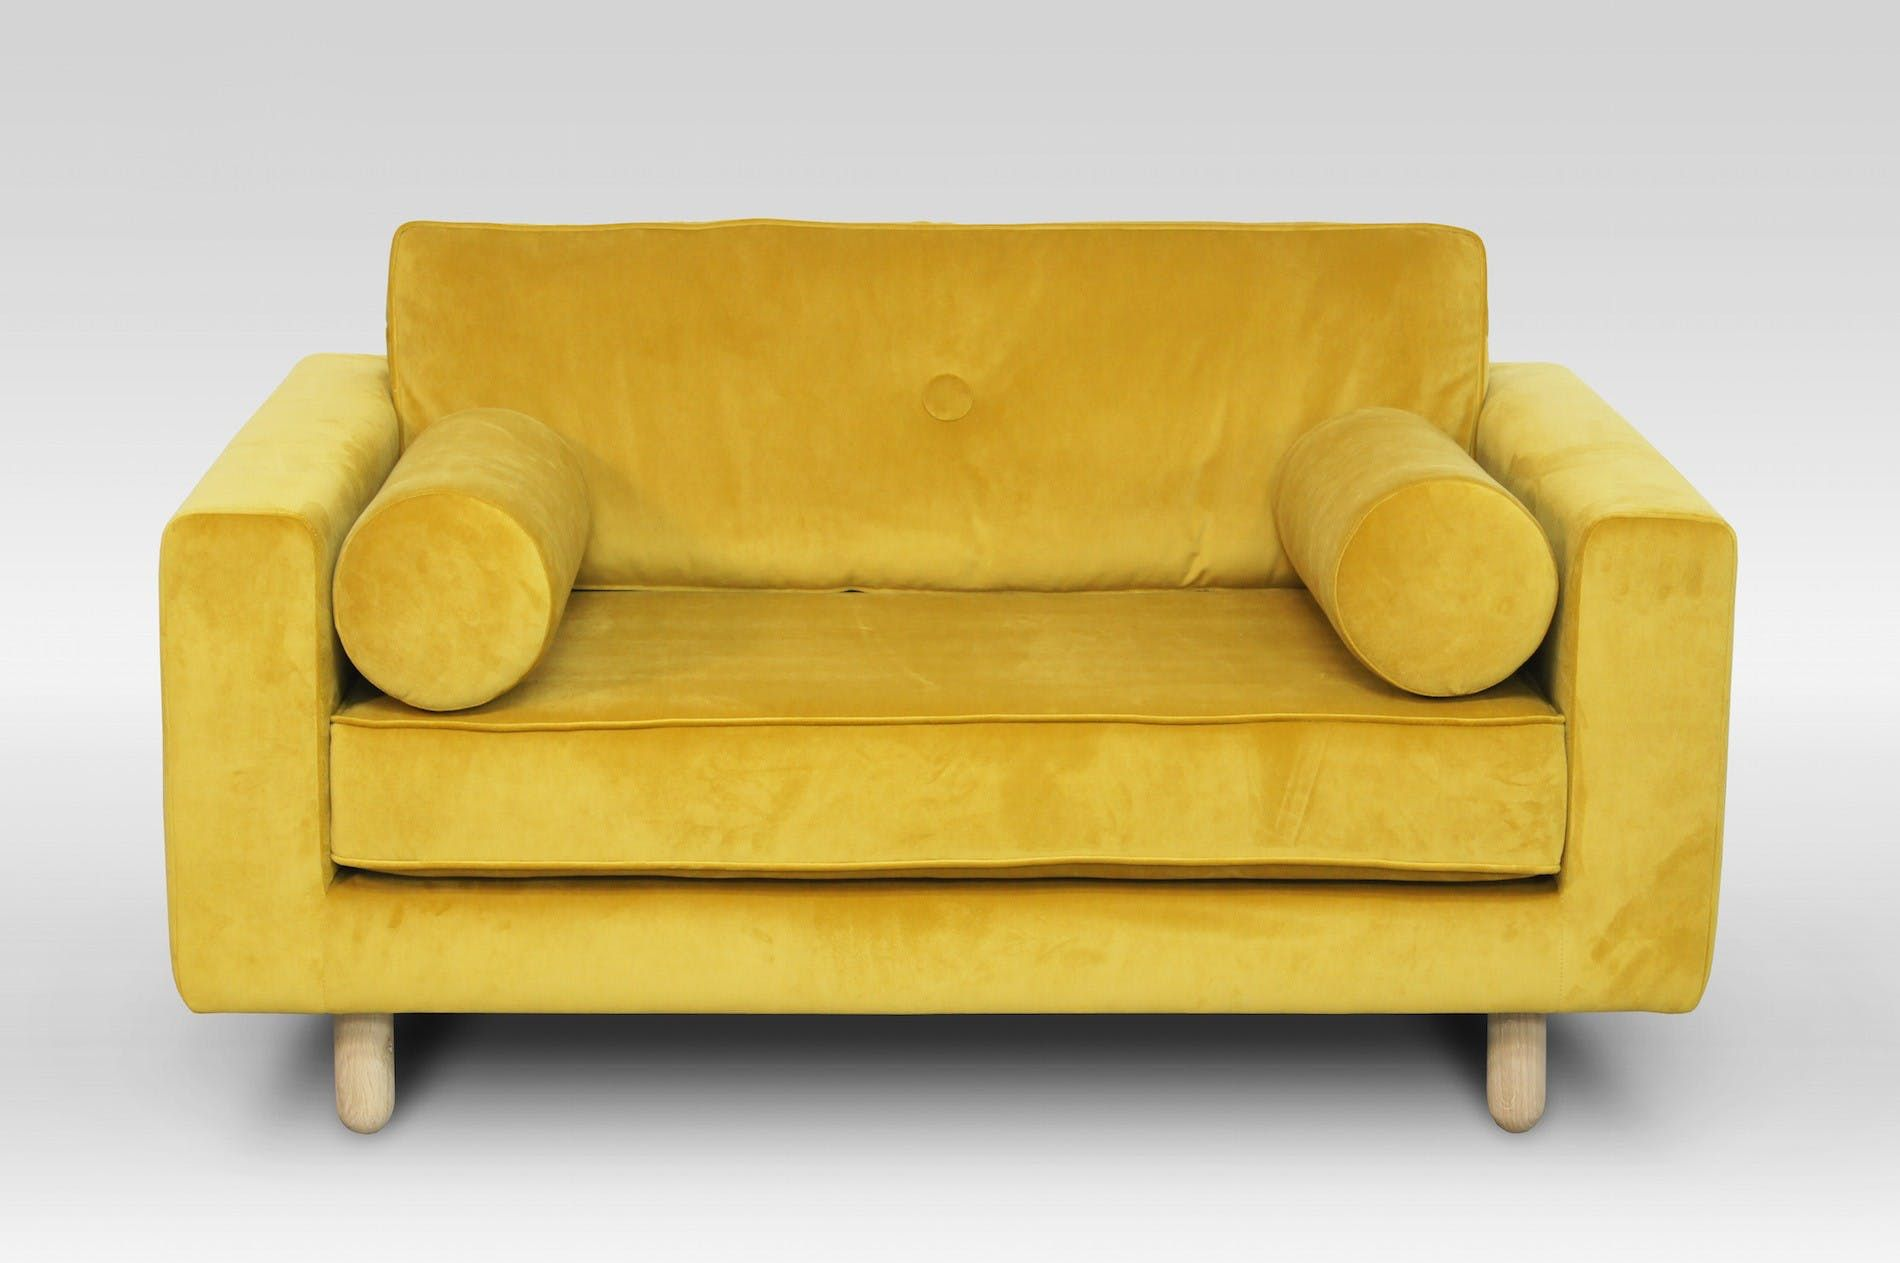 Discover Avenue Yellow Velvet Loveseat By Festamsterdam On Crowdyhouse Unique Design Products 30 Day Returns Buy Velvet Loveseat Love Seat Yellow Loveseat